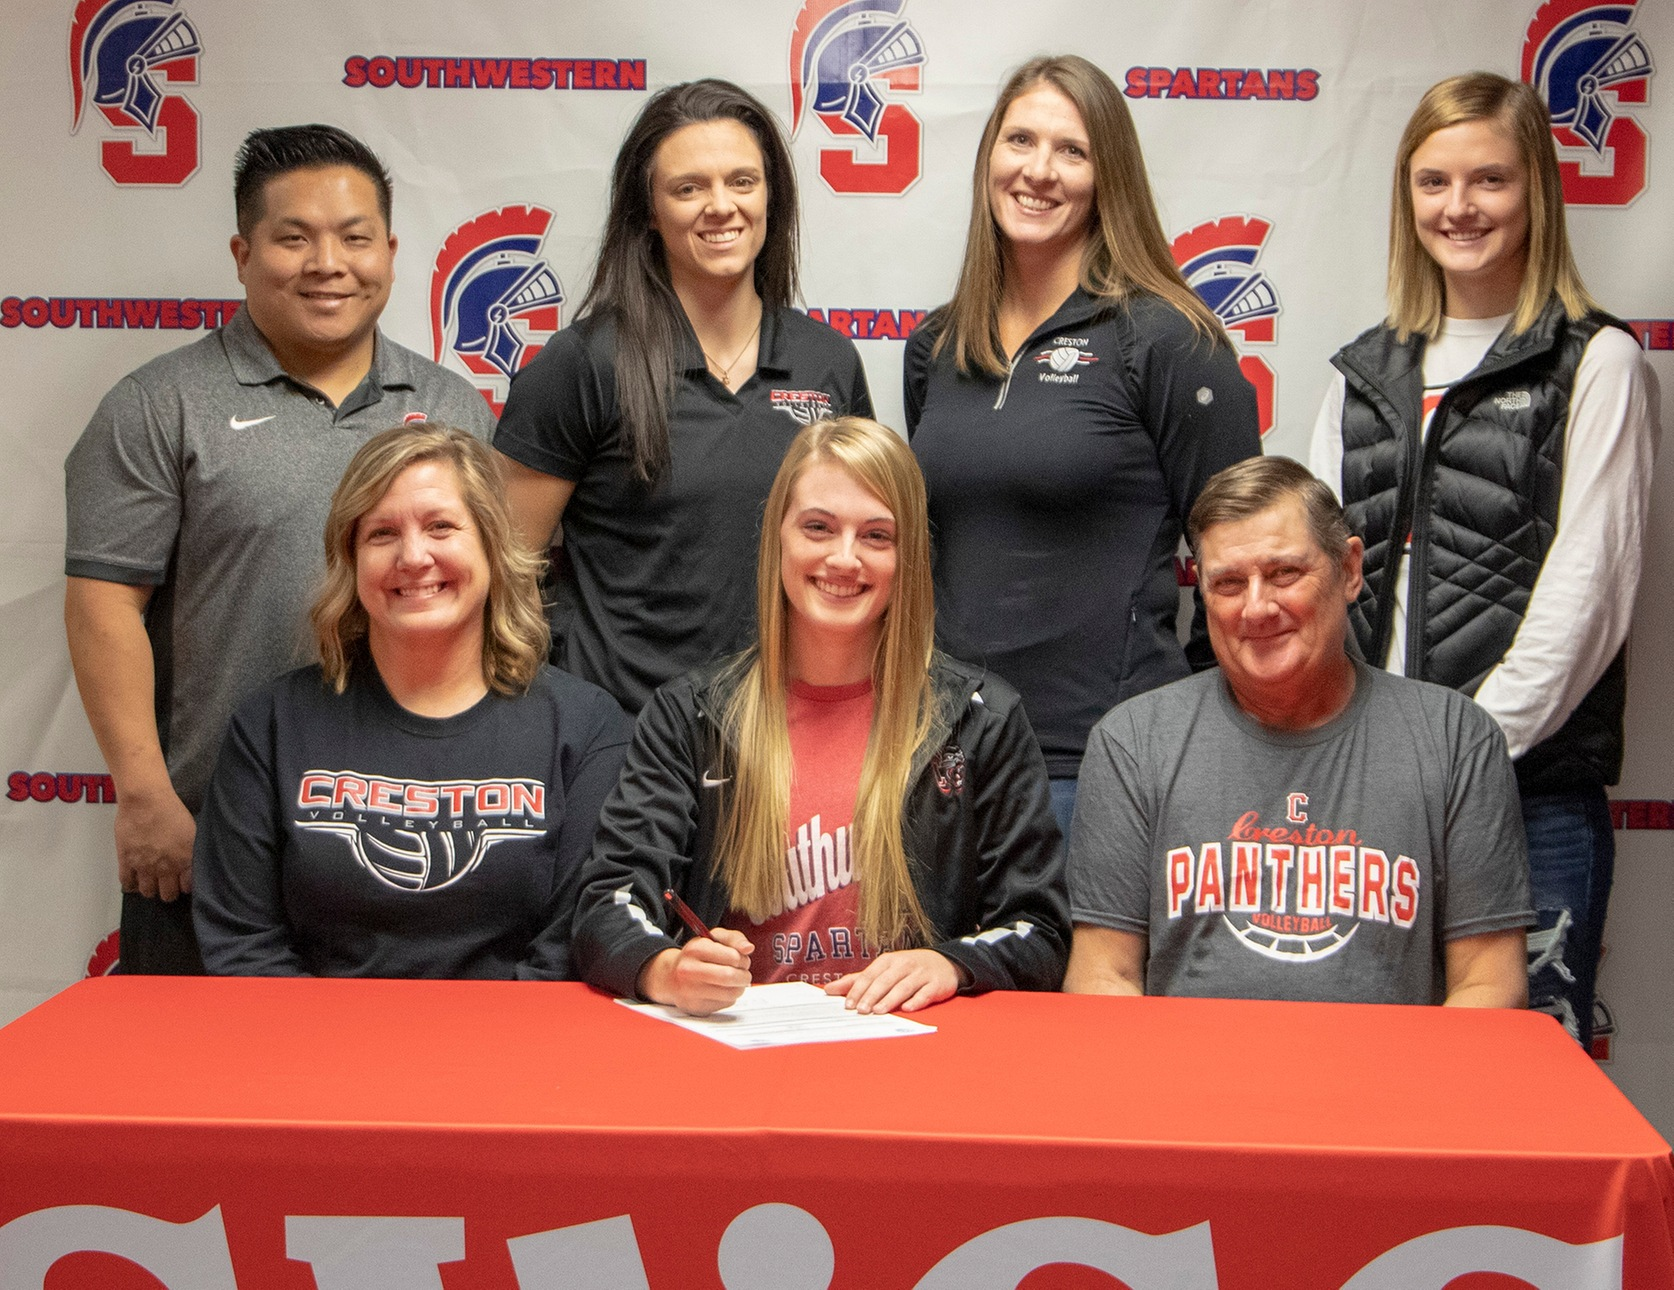 PHOTO CUTLINE (L to R): Sitting – Stacey Buxton, Taylor's mother; Taylor Buxton; and Greg Buxton, Taylor's father. Standing – Casey Quiggle, Southwestern head volleyball coach; Mallory Peterson, Creston High School volleyball coach; Naomi Sharp, Creston High School volleyball coach; and Morgan Buxton, Taylor's sister.